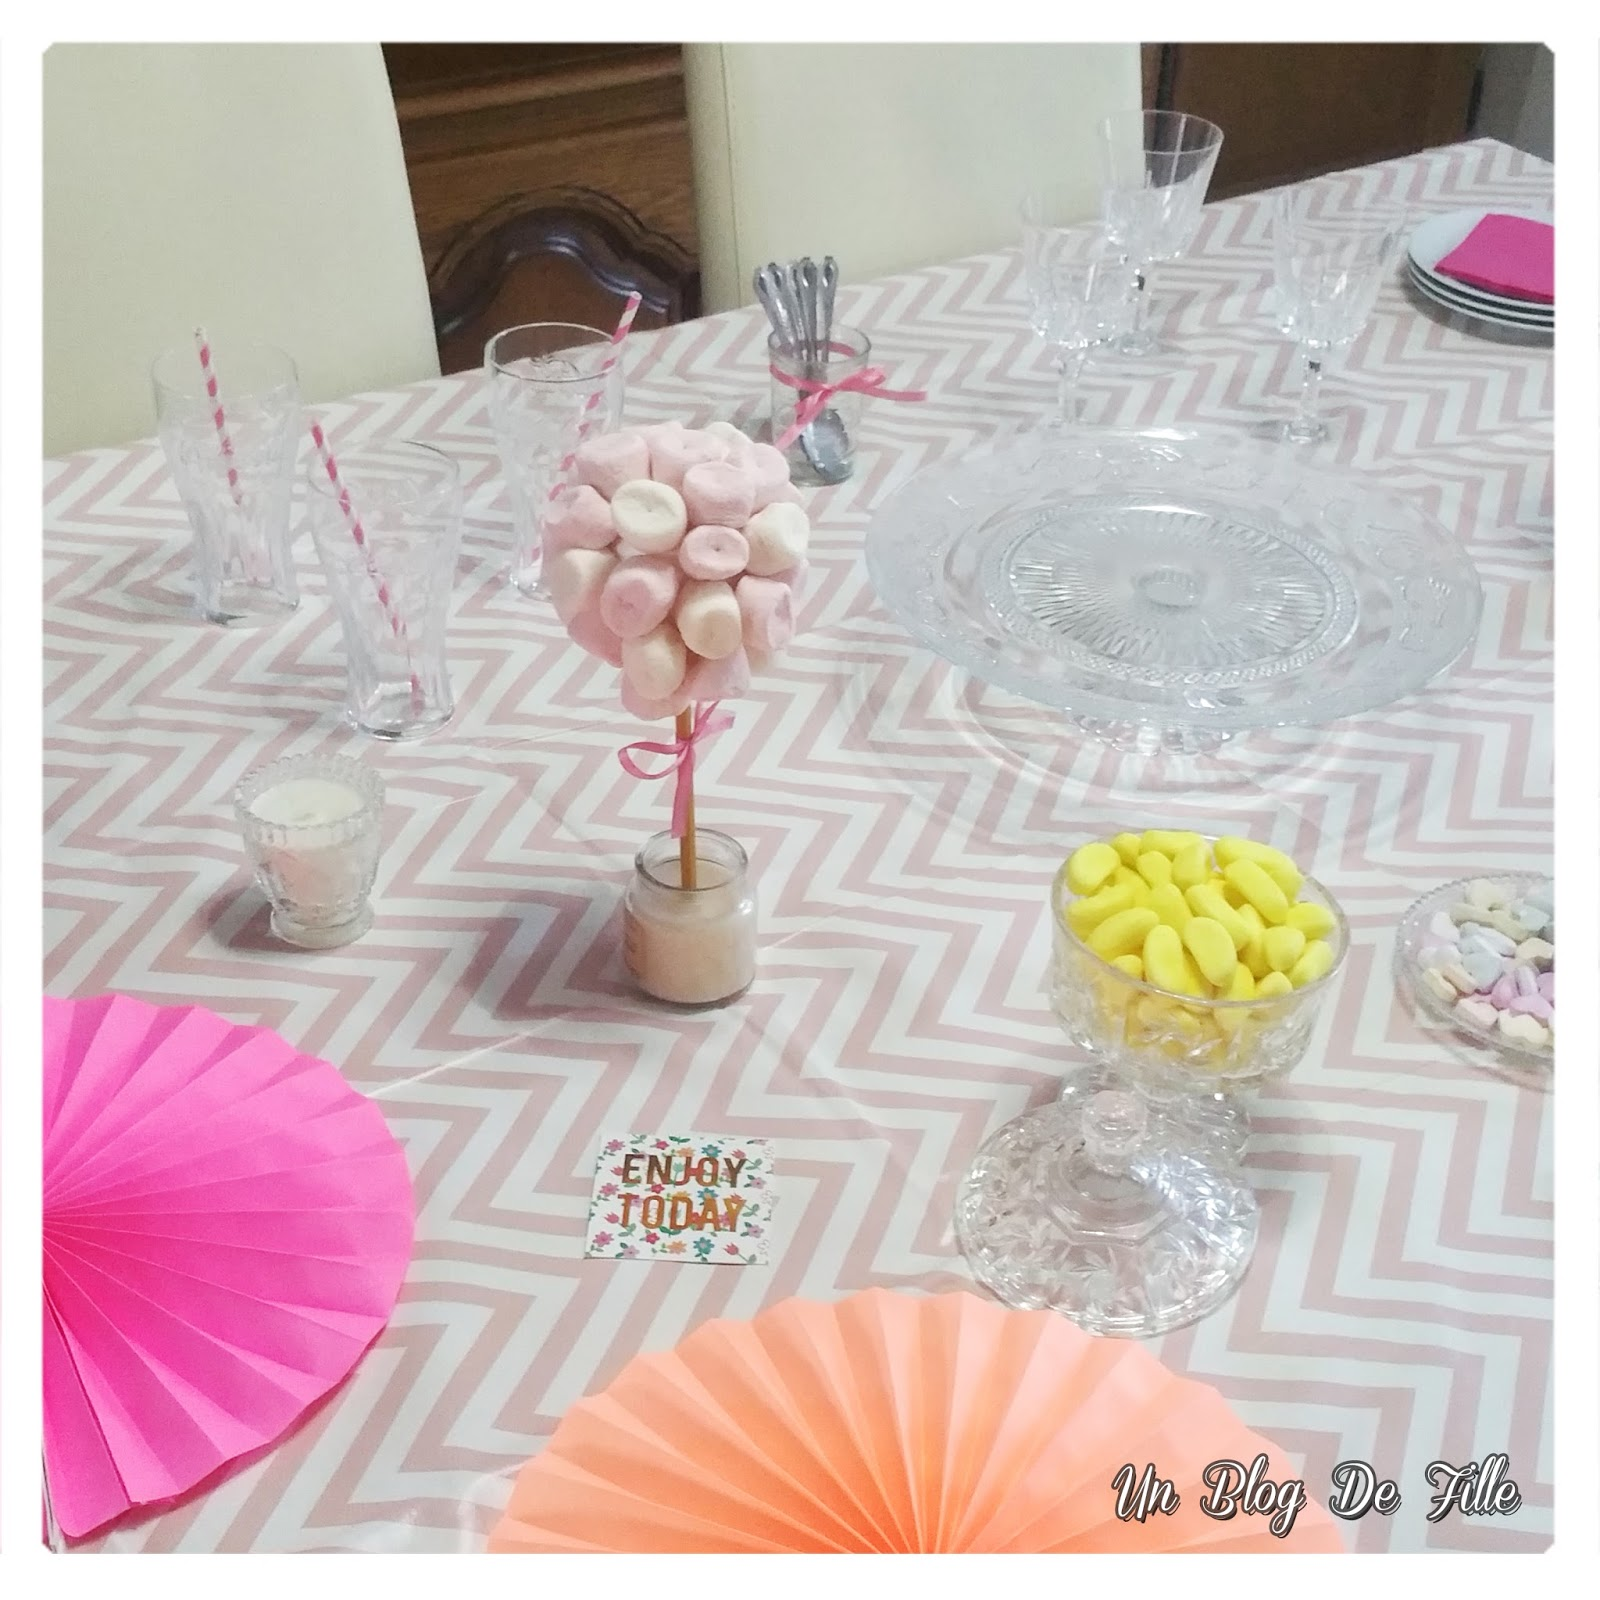 http://unblogdefille.blogspot.fr/2017/12/decoration-table-danniversaire-rose-et.html